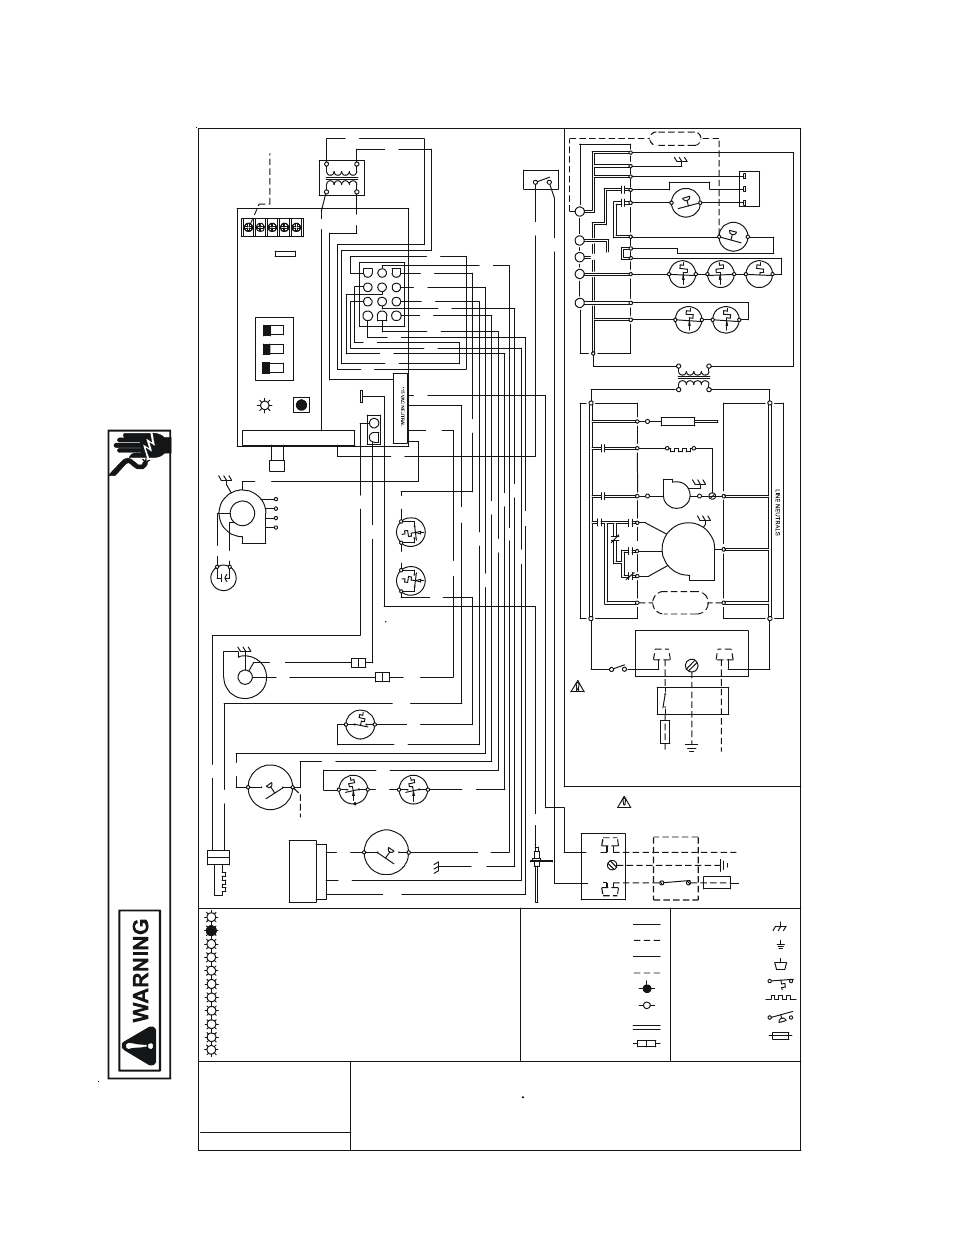 hoawiringschematic schematic diagram 8 the integrated thermostat